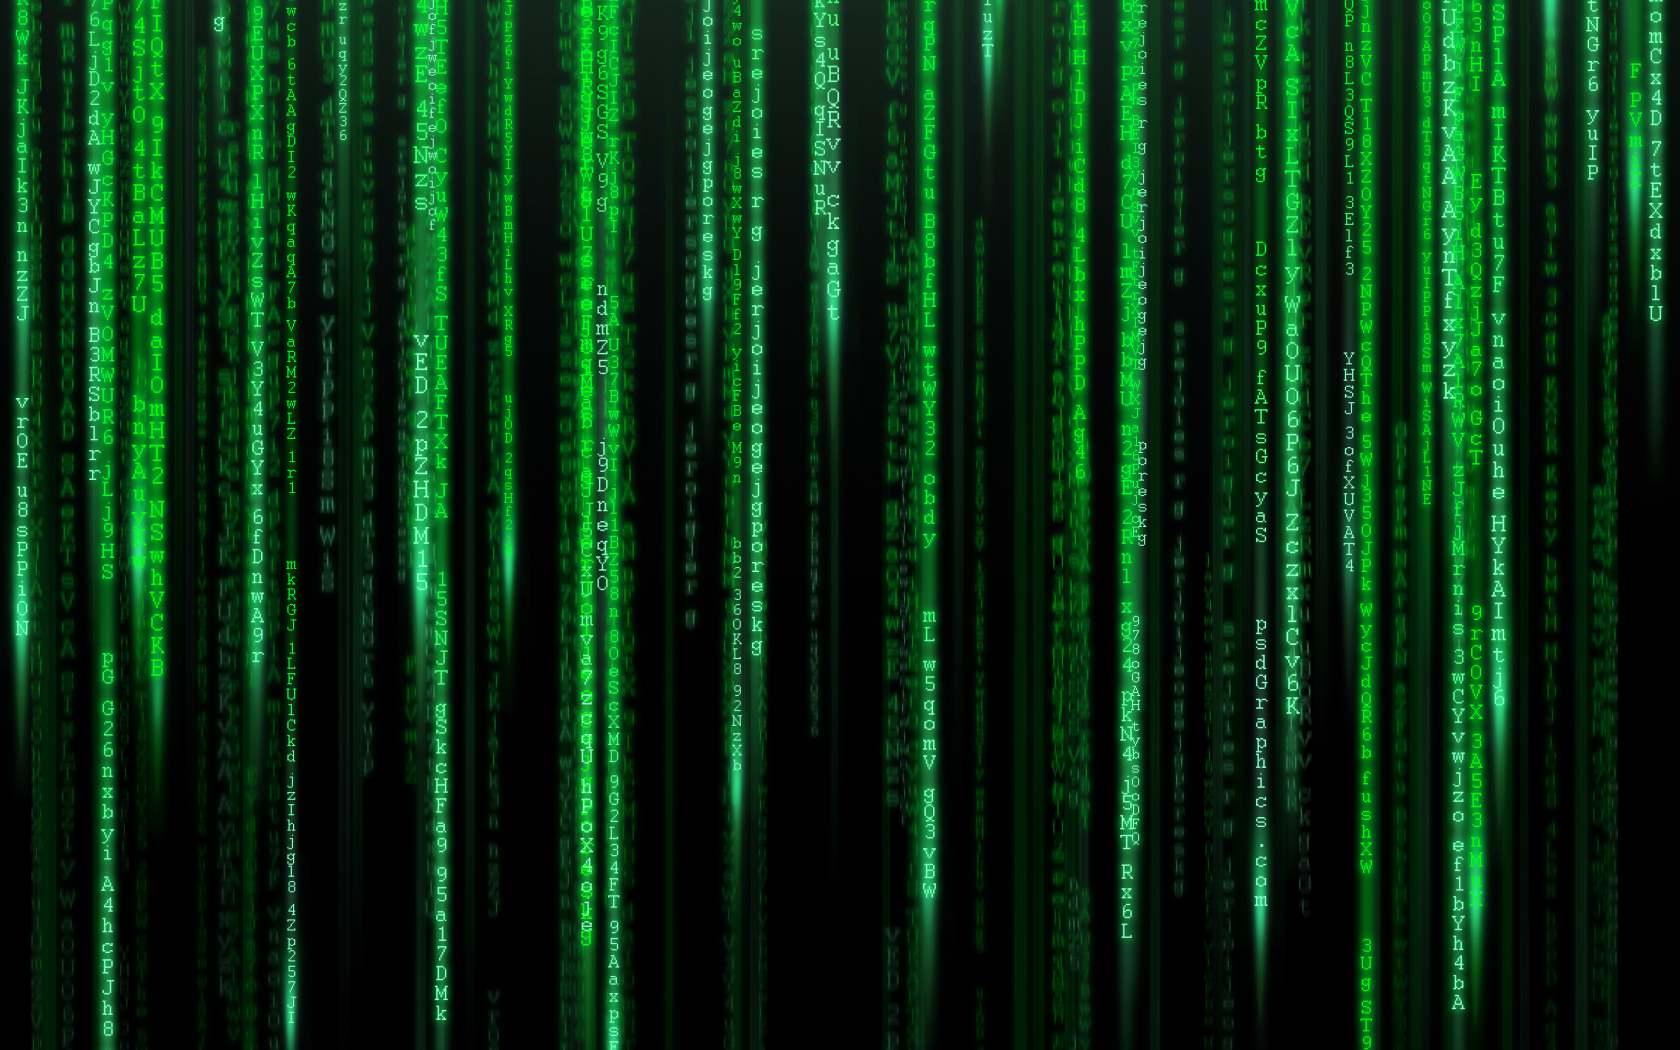 5000x3750px the matrix desktop wallpaper - wallpapersafari